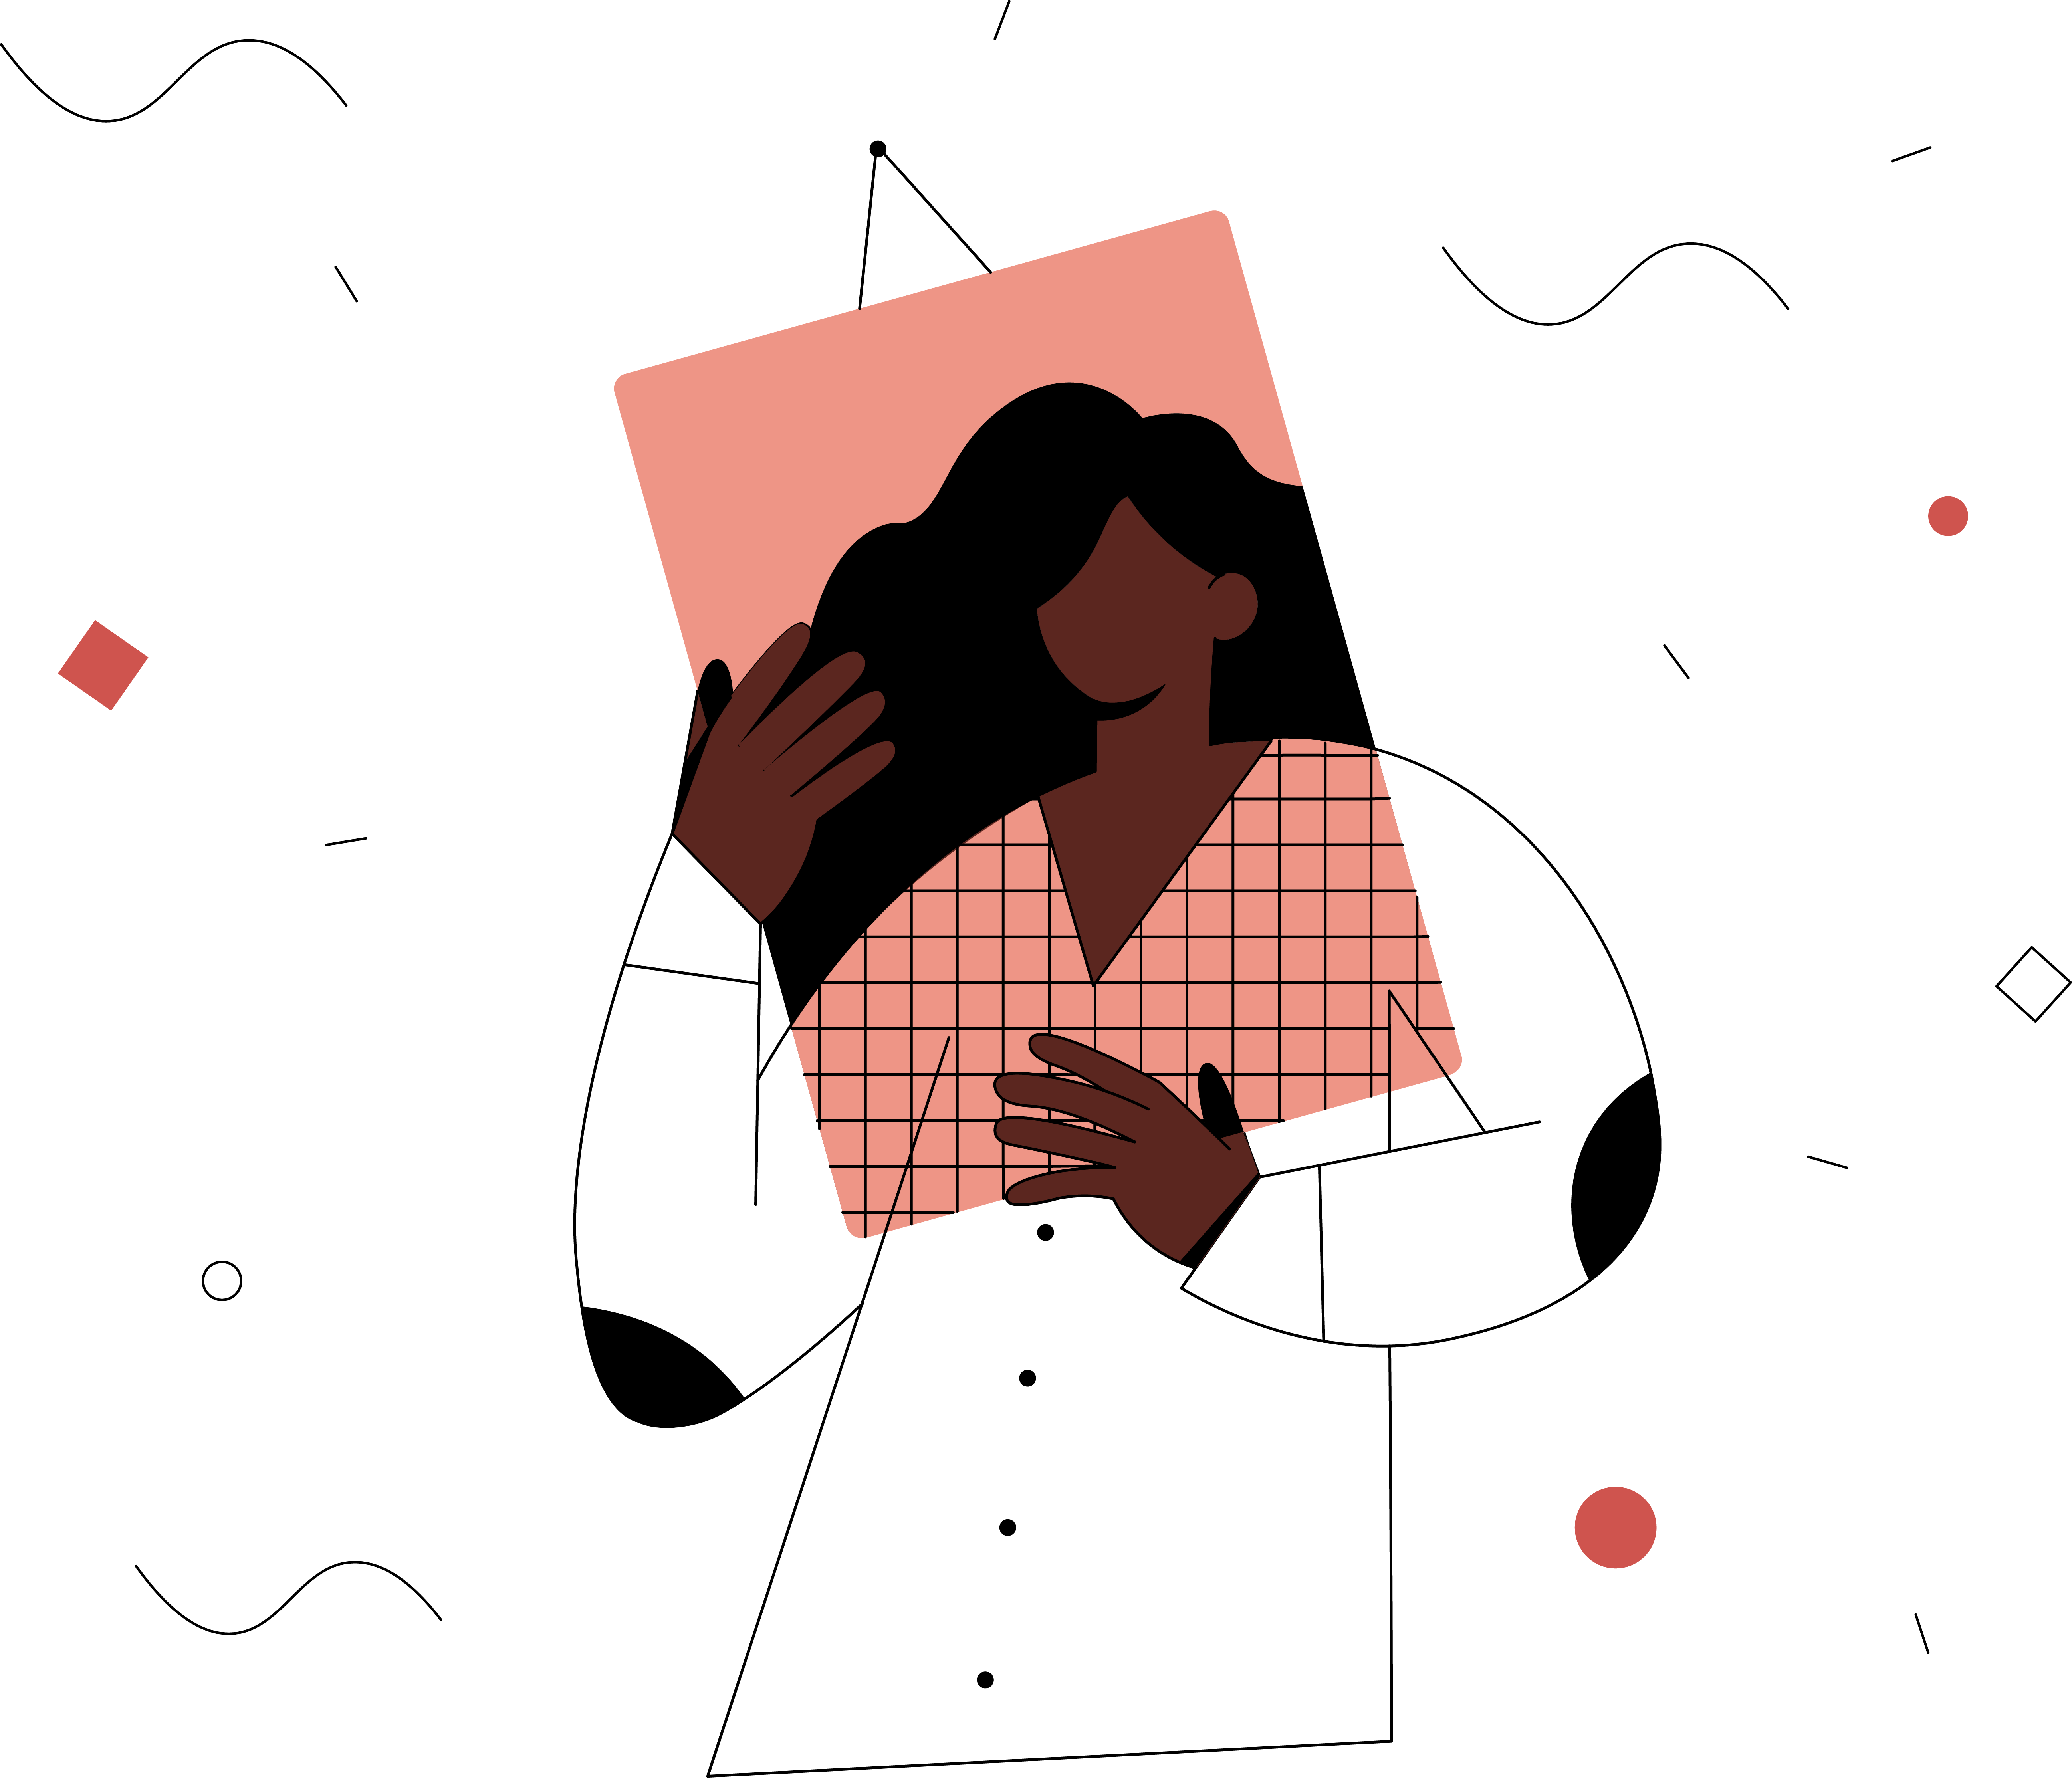 An illustration of a woman holding a picture frame in front of her face